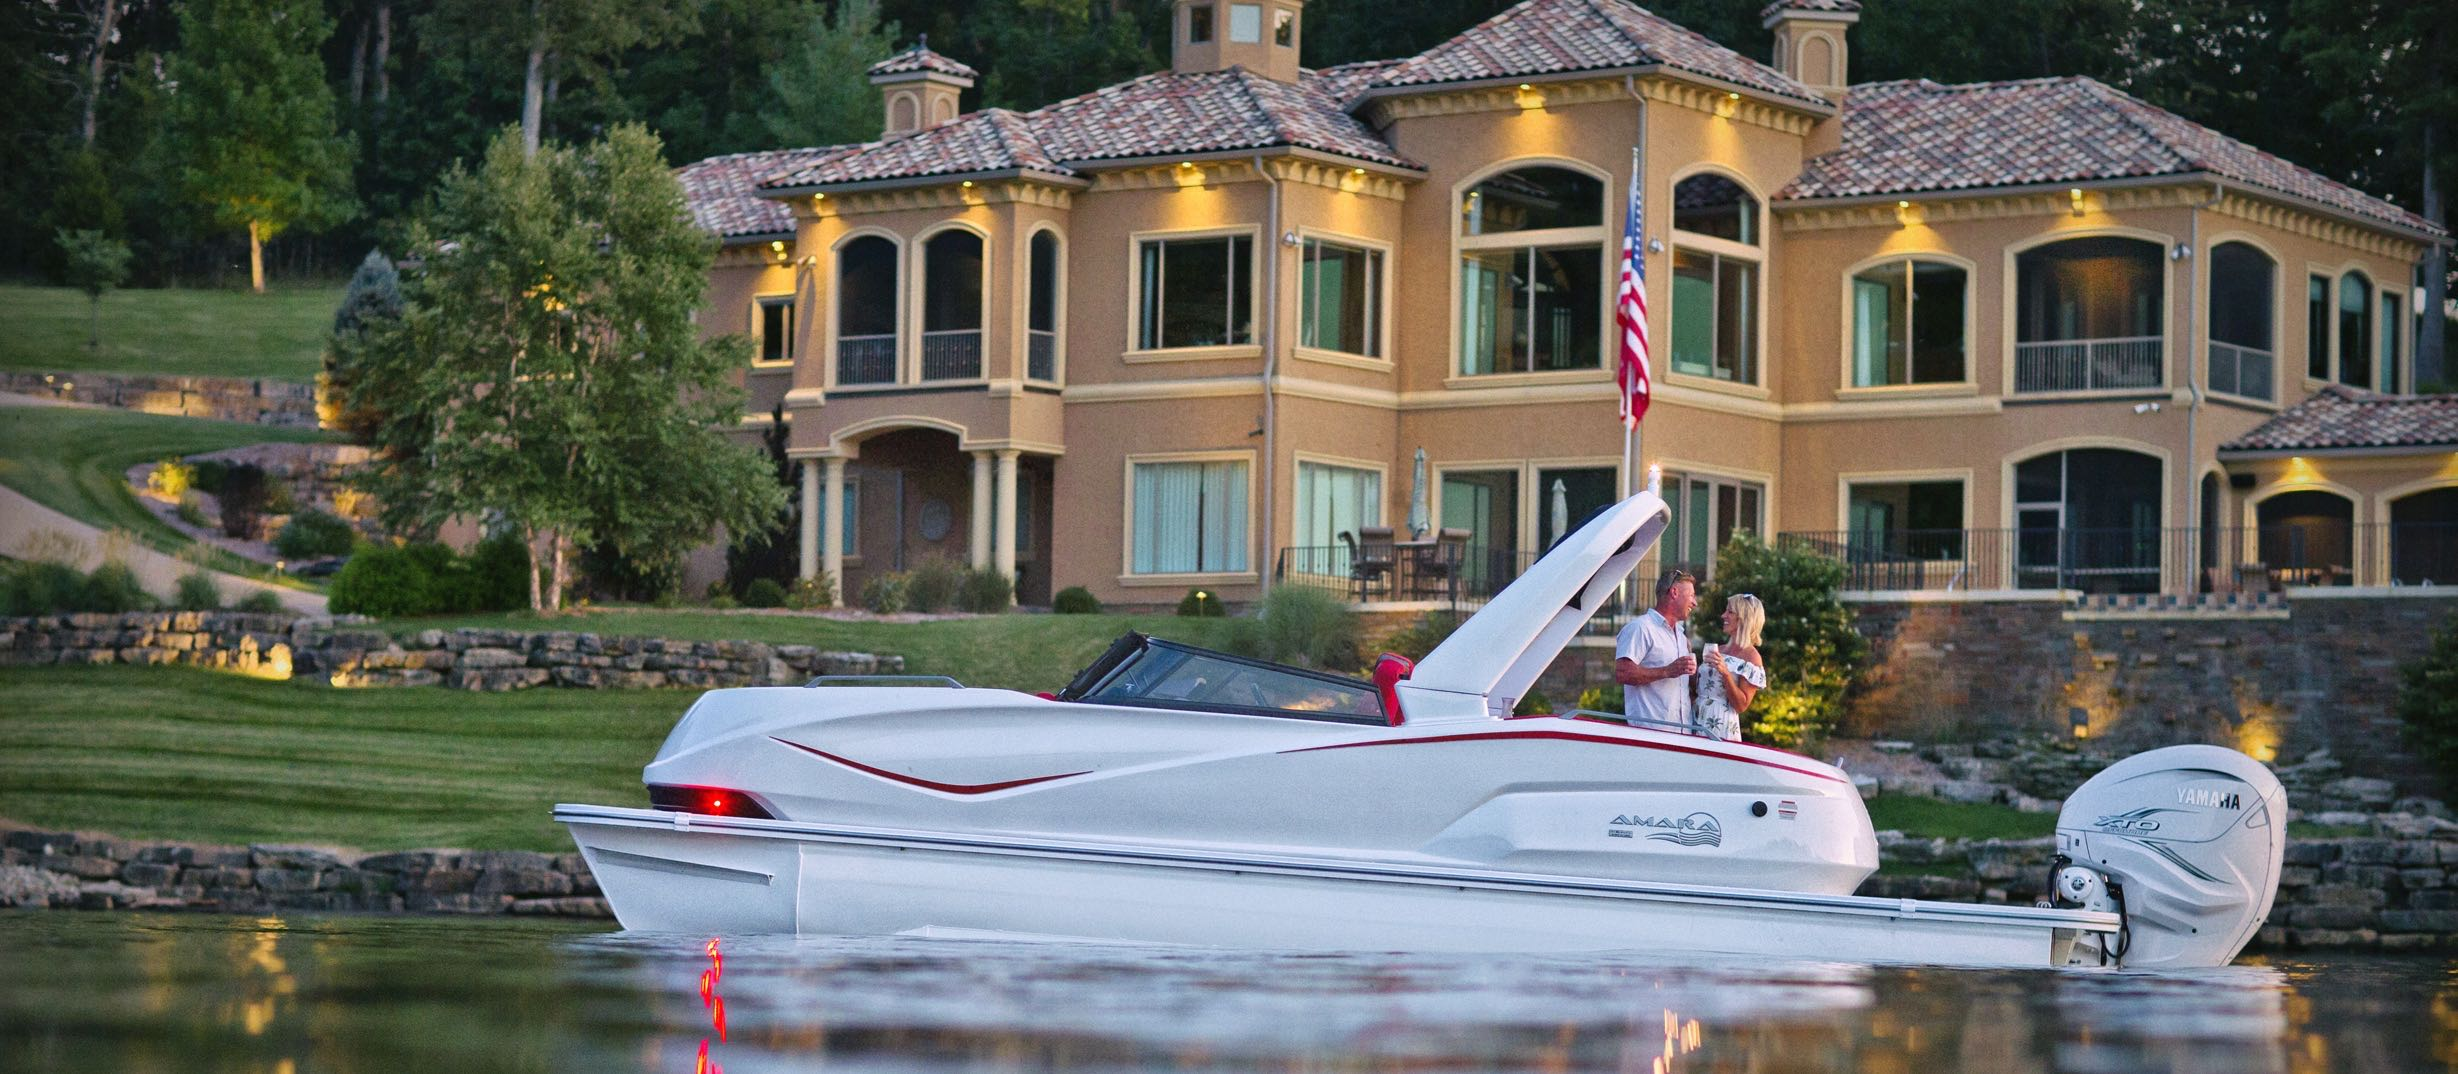 AMARA Pontoon Boat from SunCatcher Pontoons